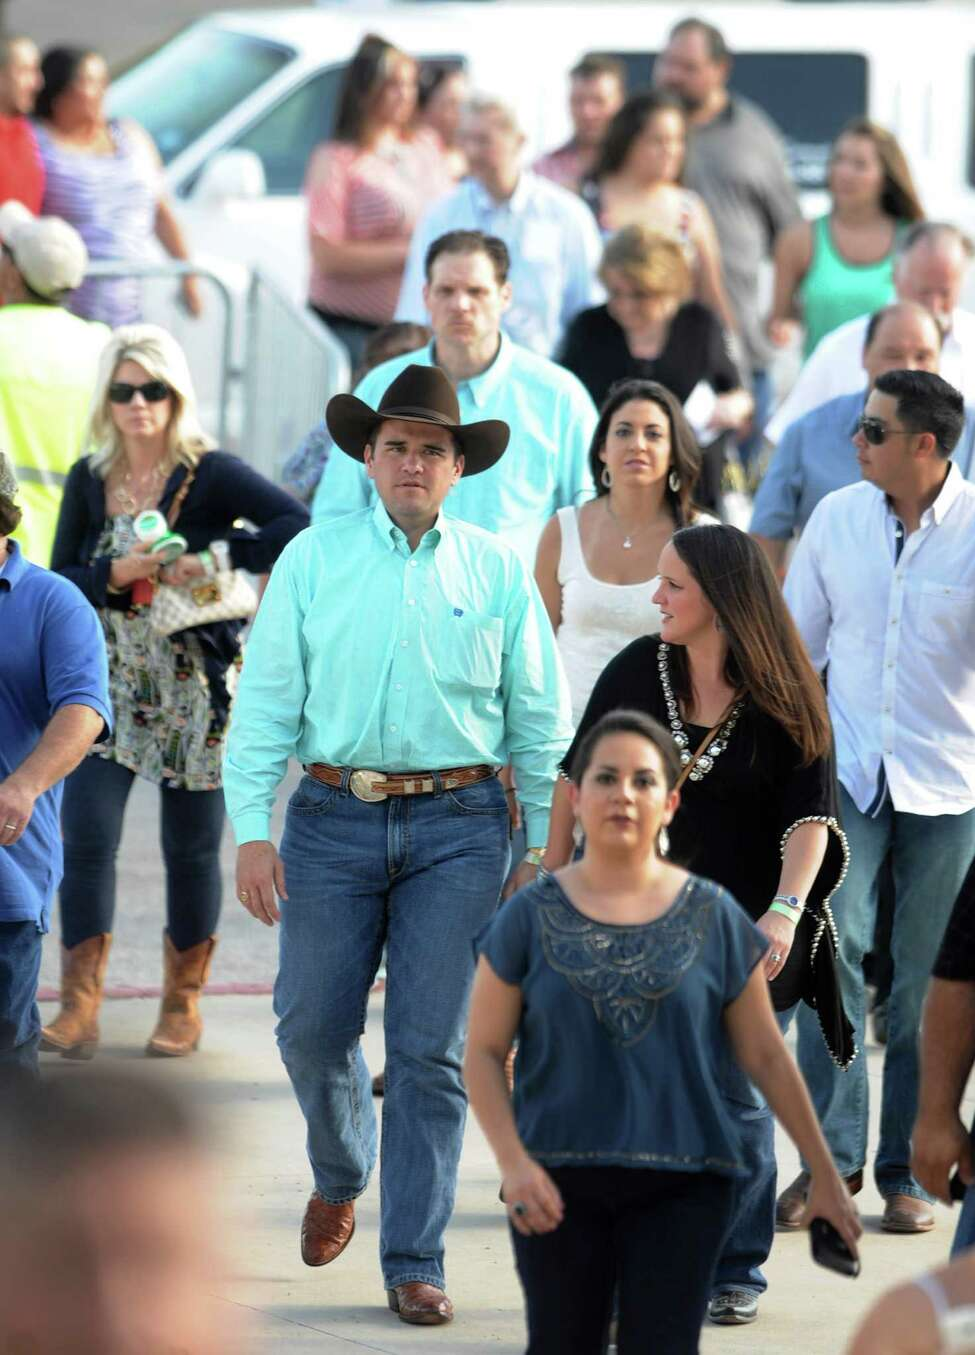 People arrive at the Alamodome for George Strait's